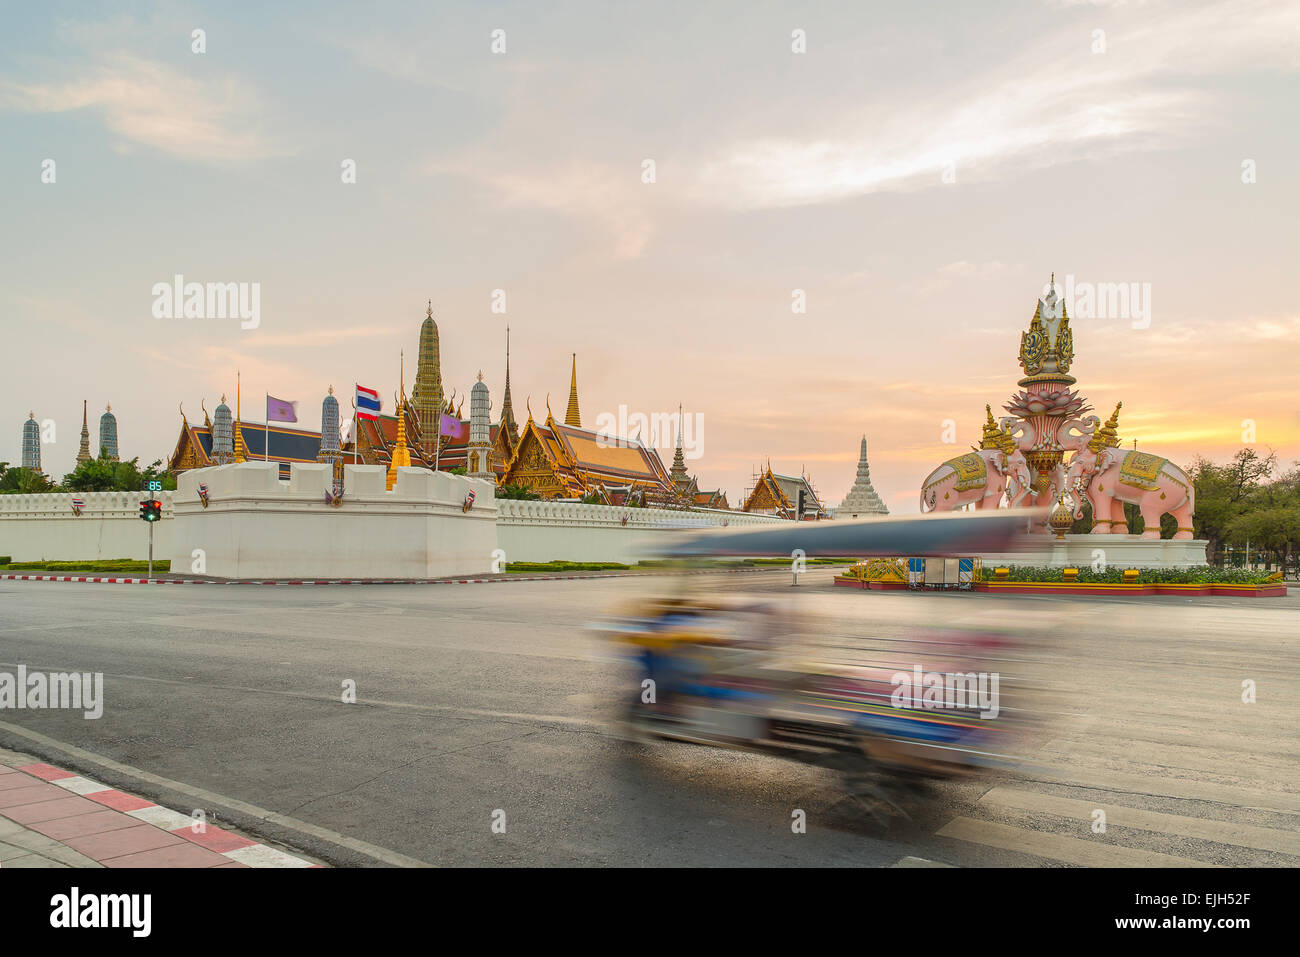 Tuk tuk for passenger cars. To go sightseeing in Bangkok. - Stock Image